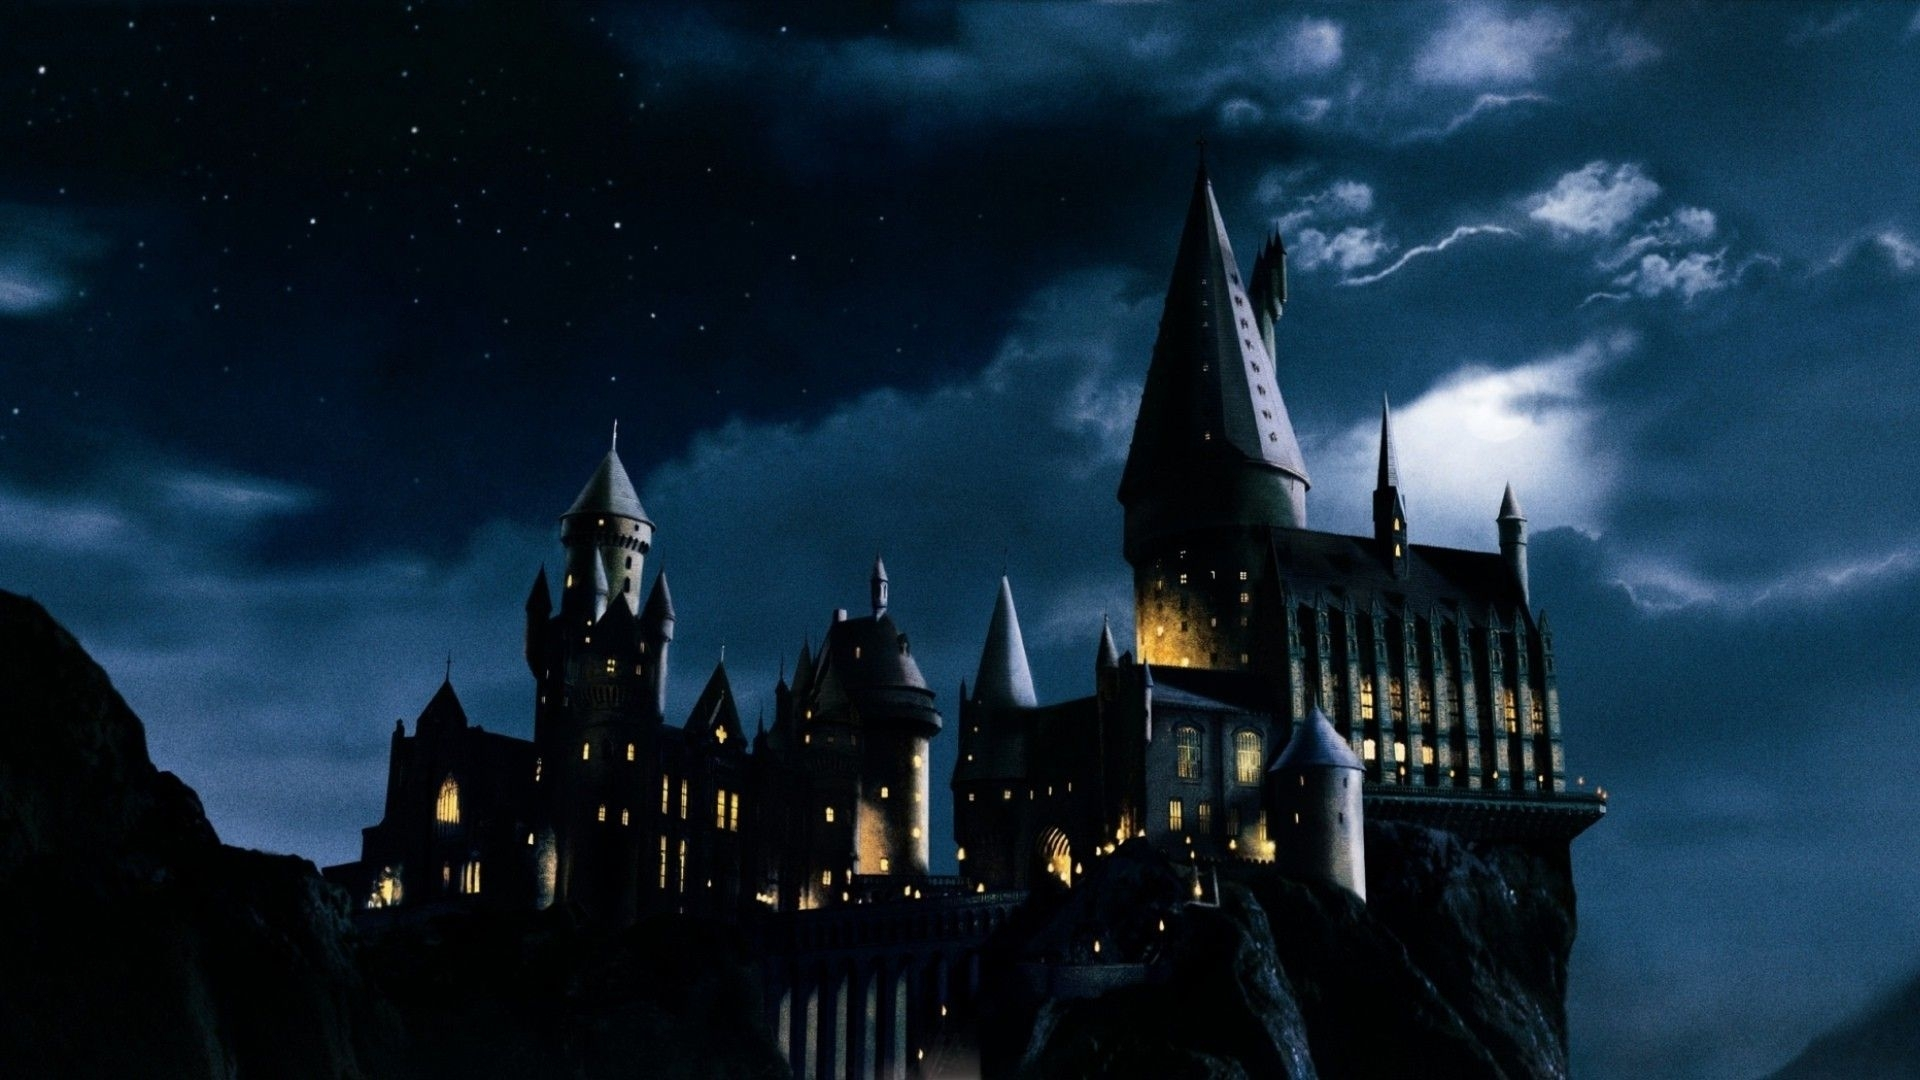 harry potter hogwarts wallpaper - wallpapersafari | harry potter and